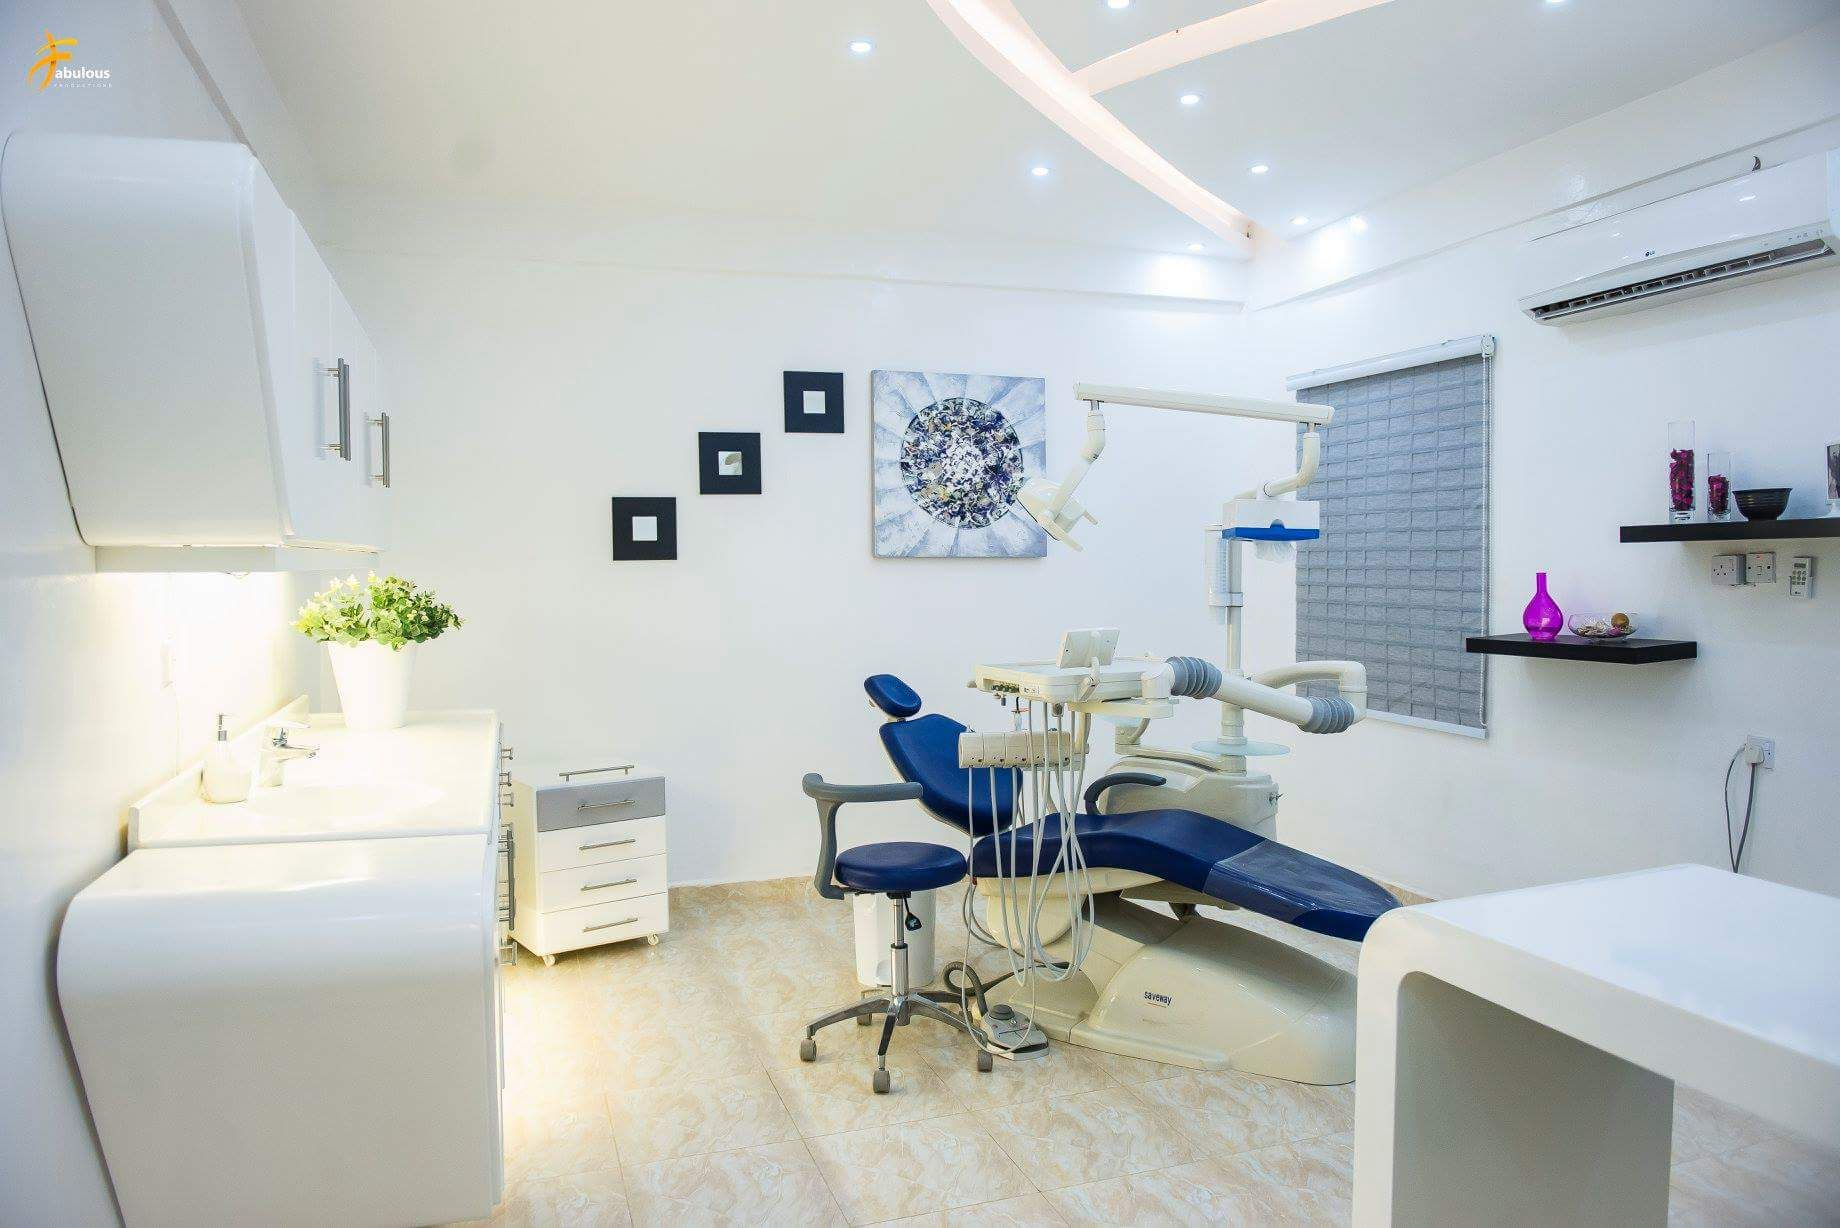 oralis dental center sudan khartoum interior design clinics rh pinterest com